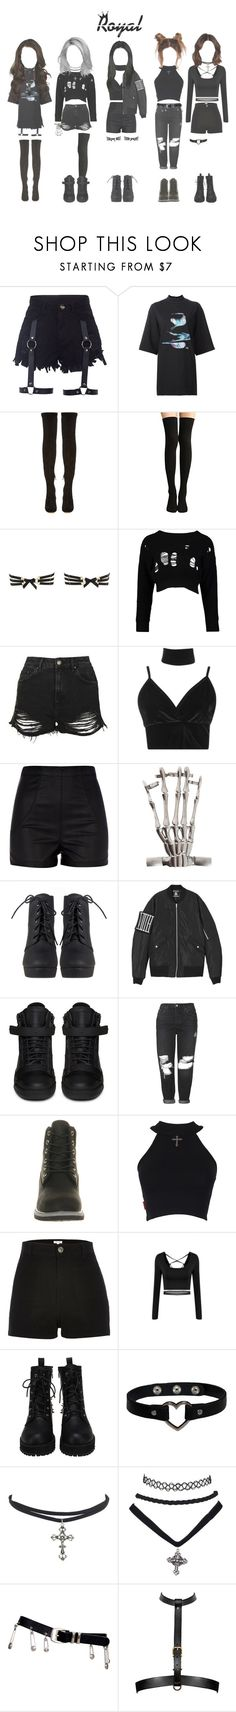 """""""ROYAL Performance"""" by mama-awards ❤ liked on Polyvore featuring Y-3, Nicholas Kirkwood, Bordelle, Boohoo, Topshop, River Island, Giuseppe Zanotti, Timberland and Versace"""